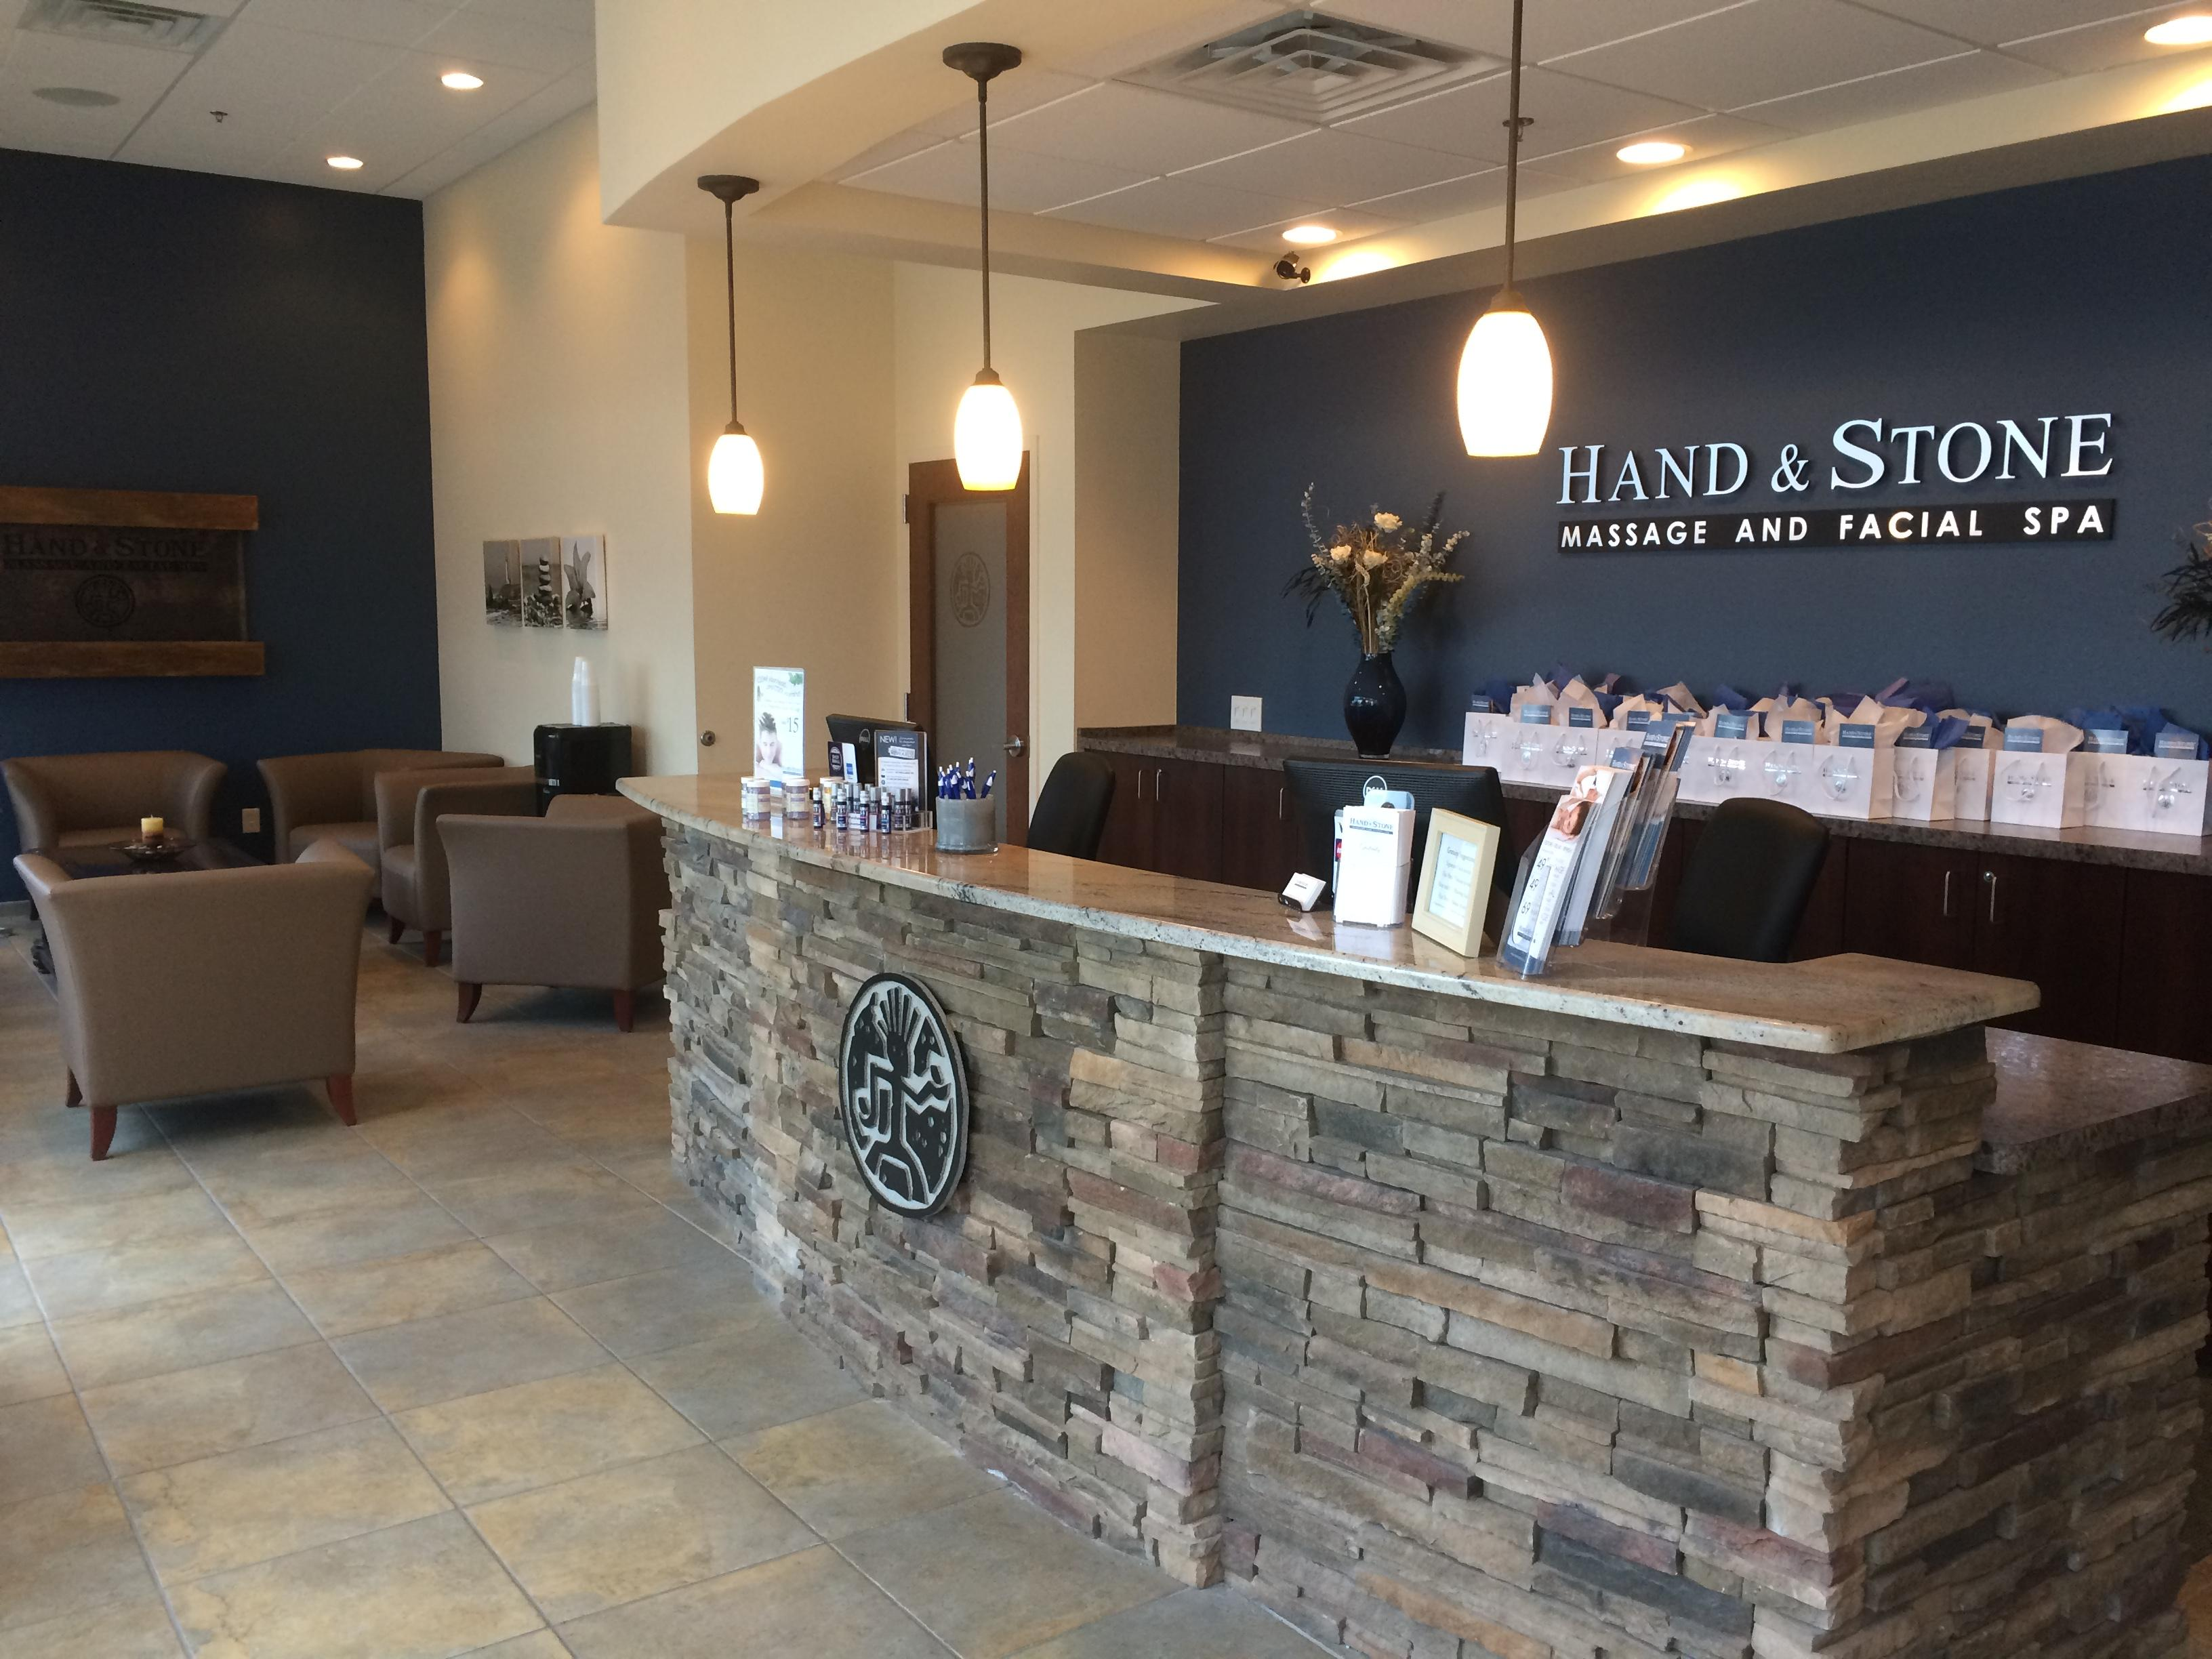 Hand & Stone Massage and Facial Spa, Washington Township